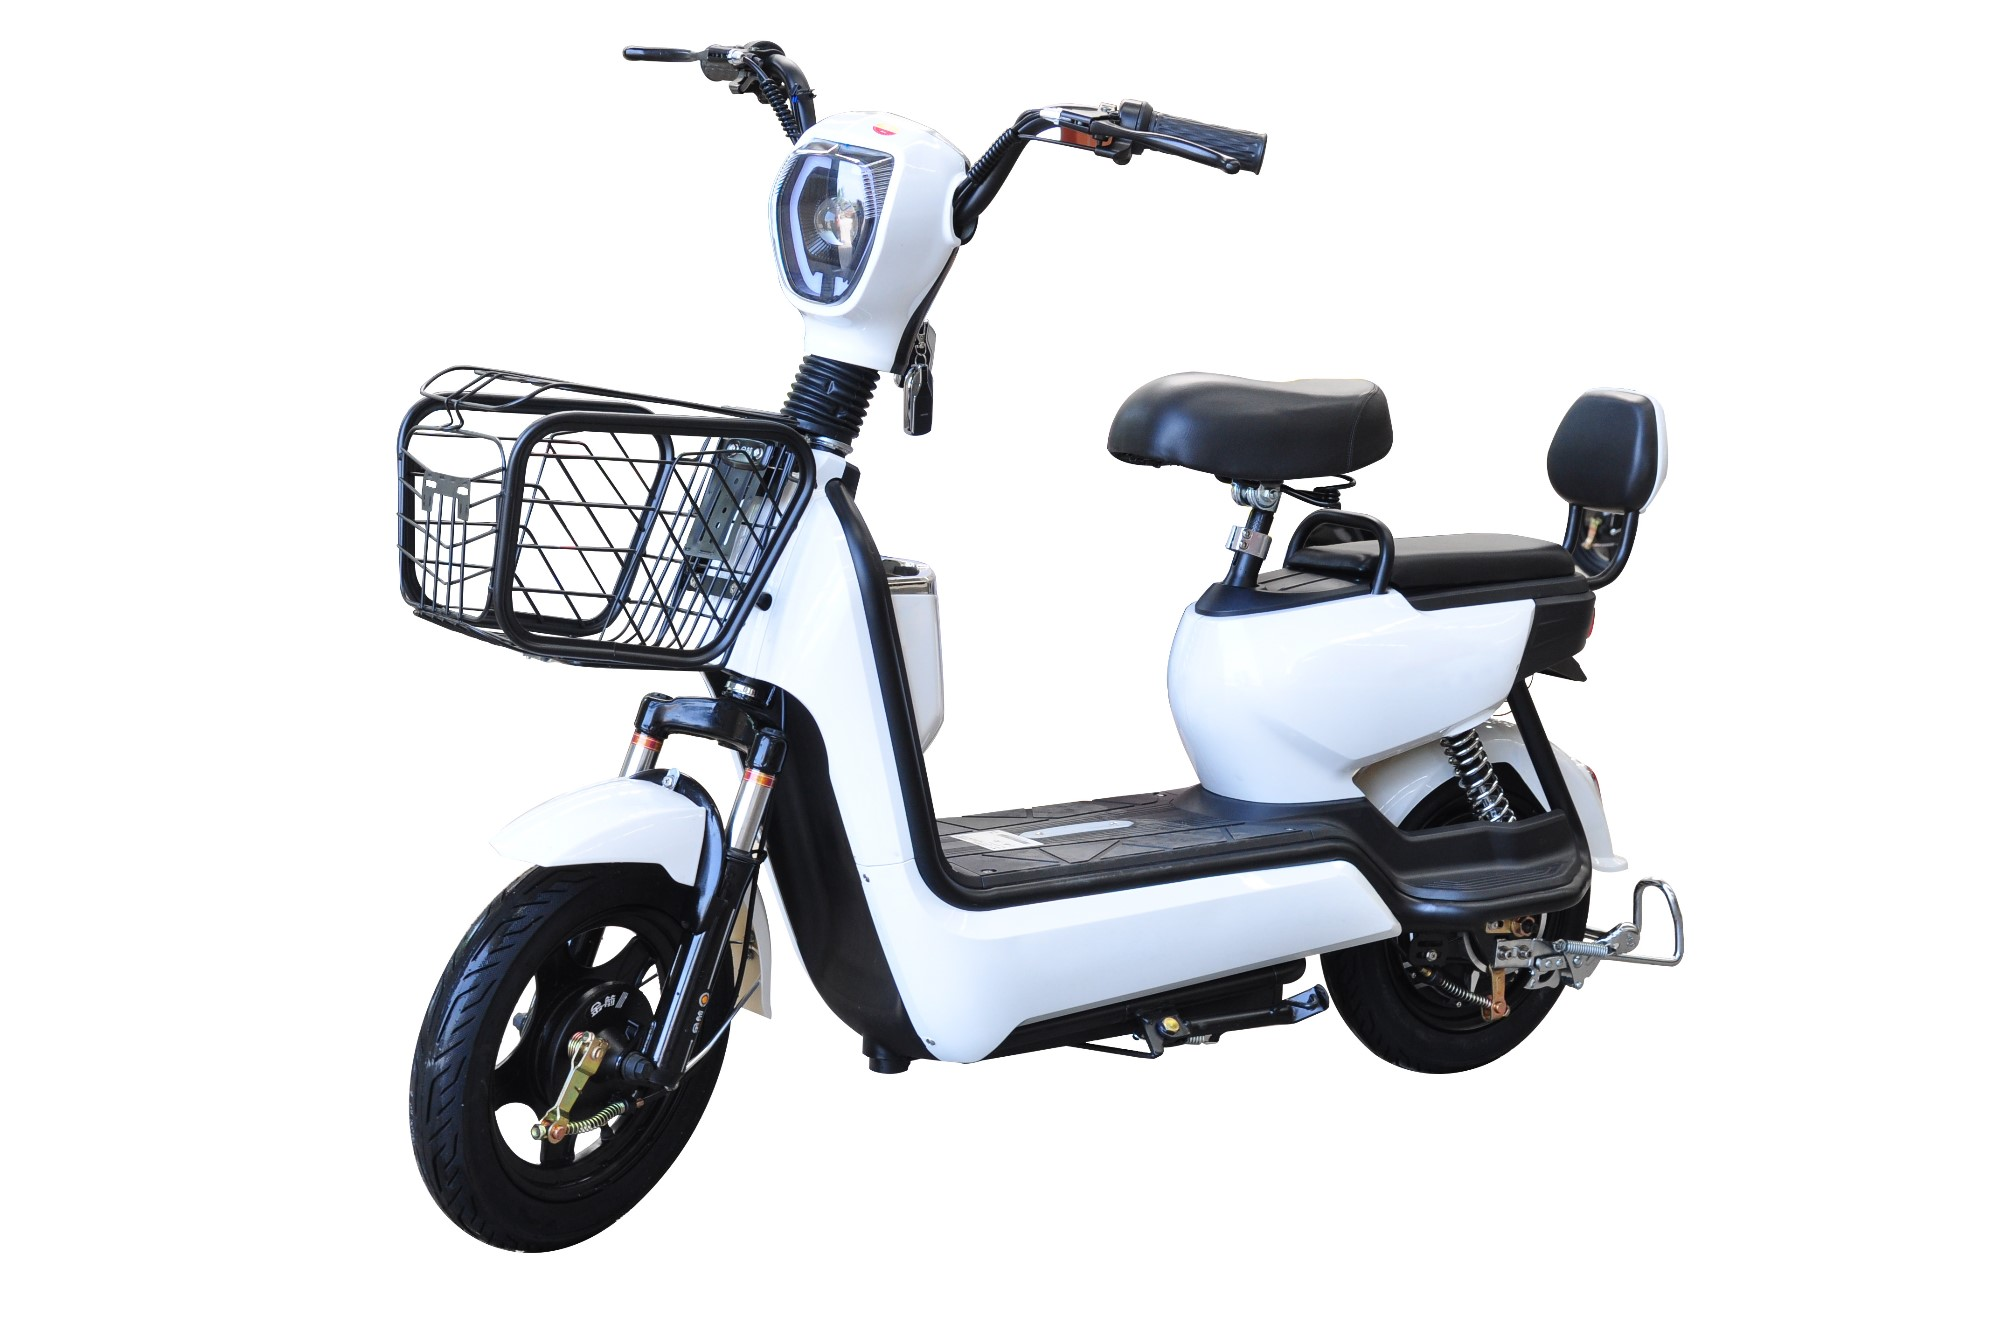 High quality Low price electric bike Quotes,China Low price electric bike Factory,Low price electric bike Purchasing